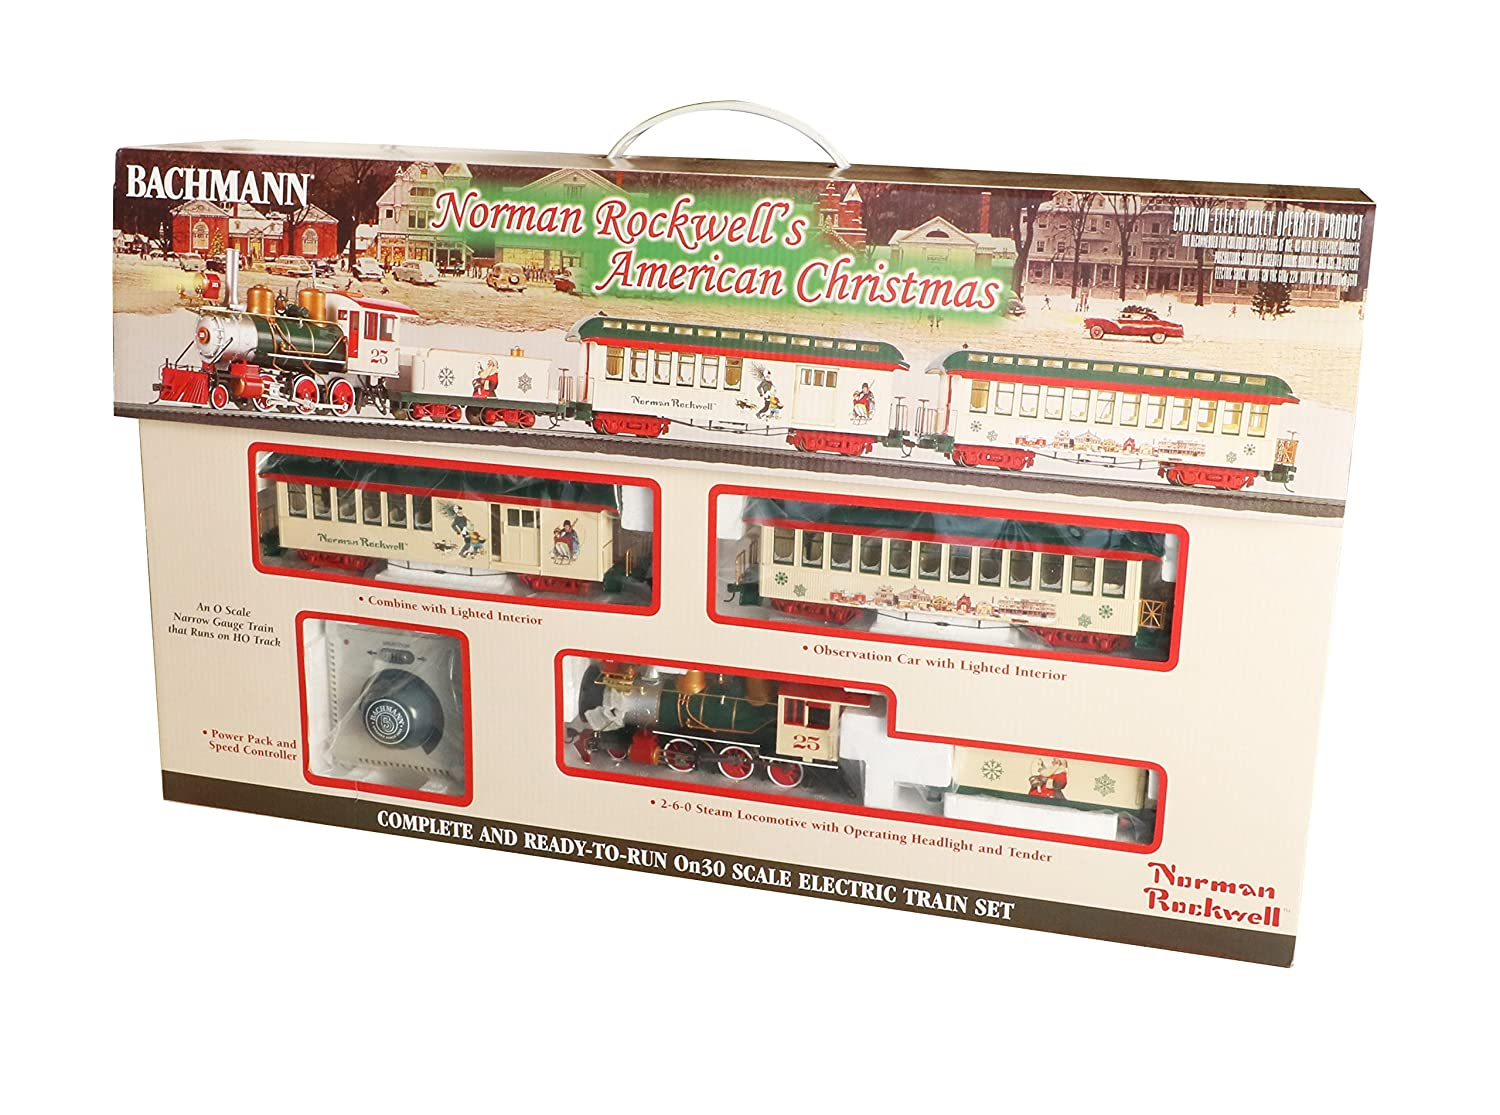 Ho Christmas Train.Bachmann Trains Norman Rockwell S American Christmas Ready To Run Electric Train Set On30 Scale Runs On Ho Track